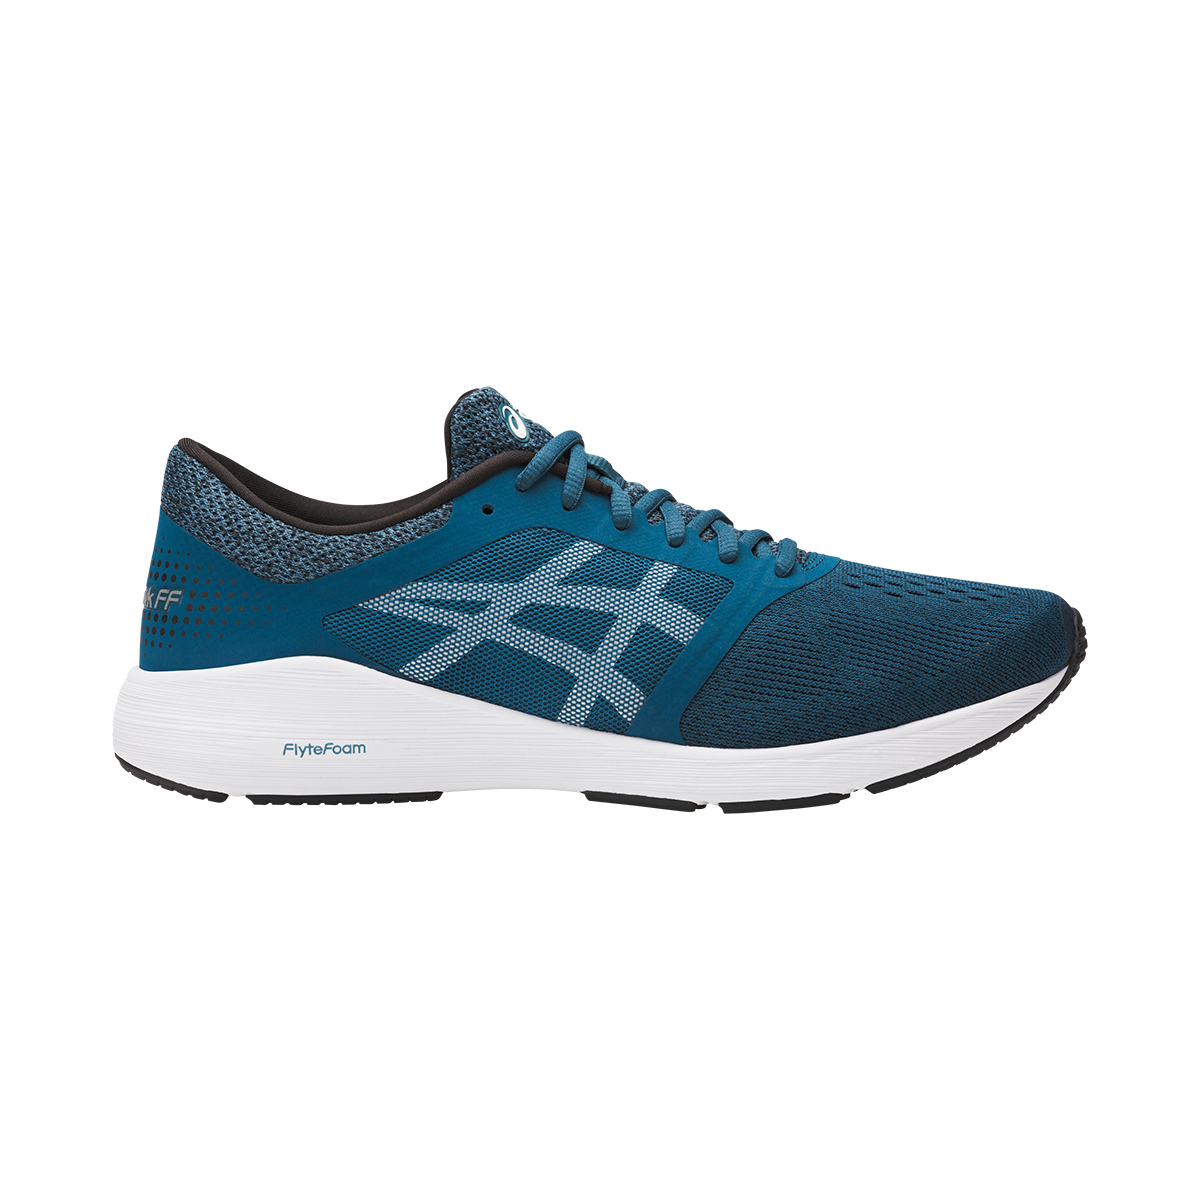 Altra Youth Running Shoes